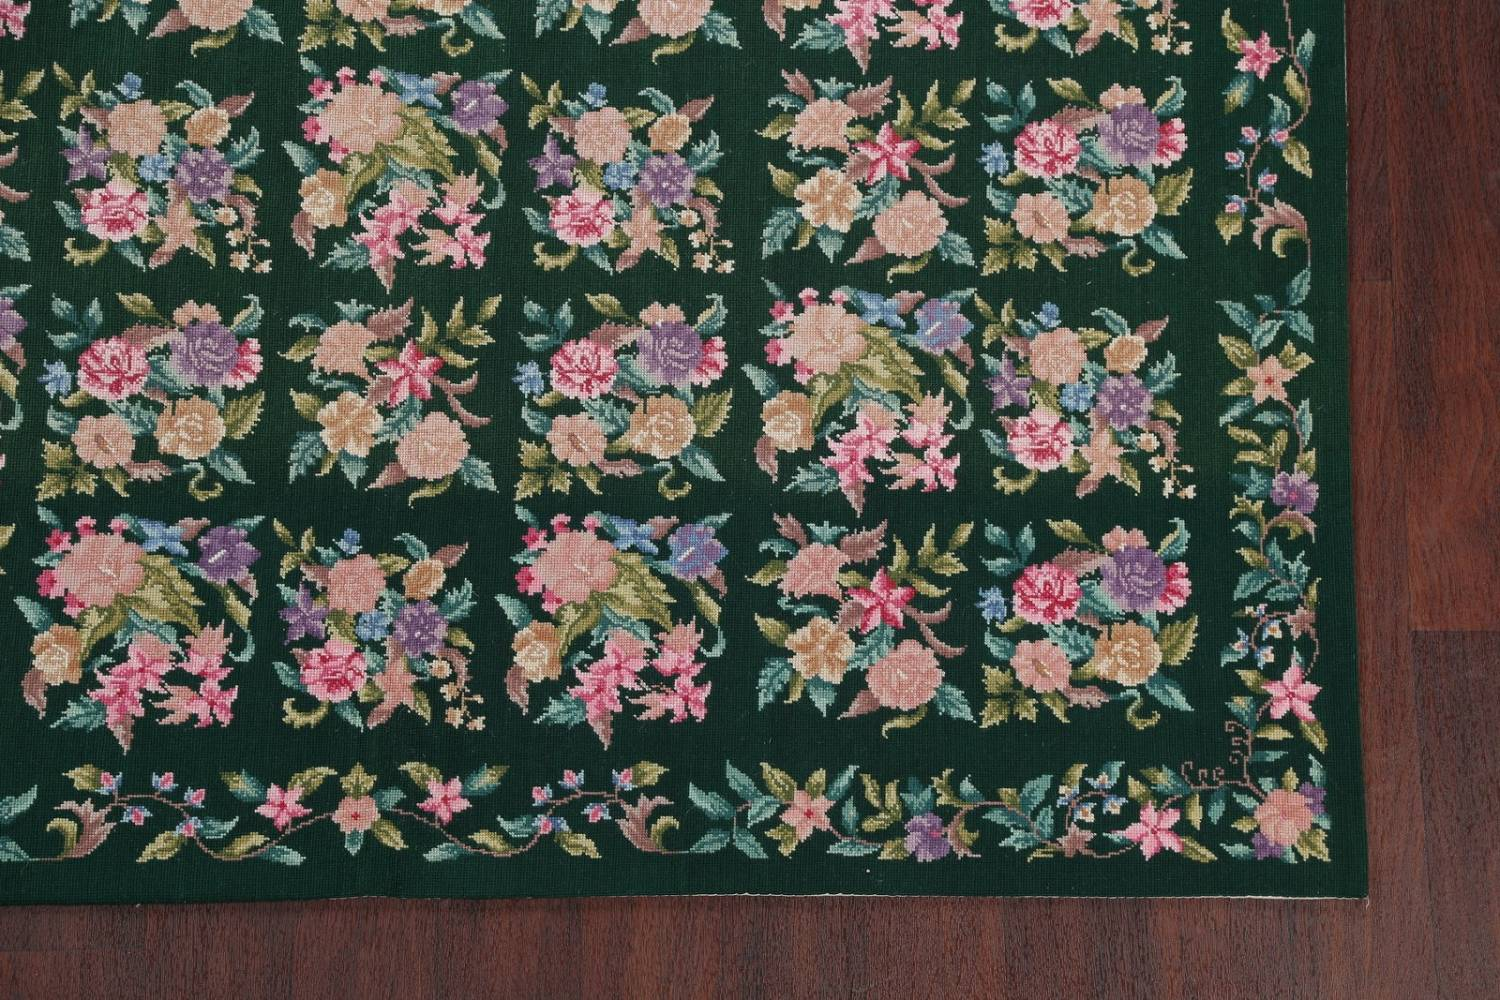 Hunter Green Floral Aubusson Needle-point Chinese Woven Area Rug Wool 6x9 image 6